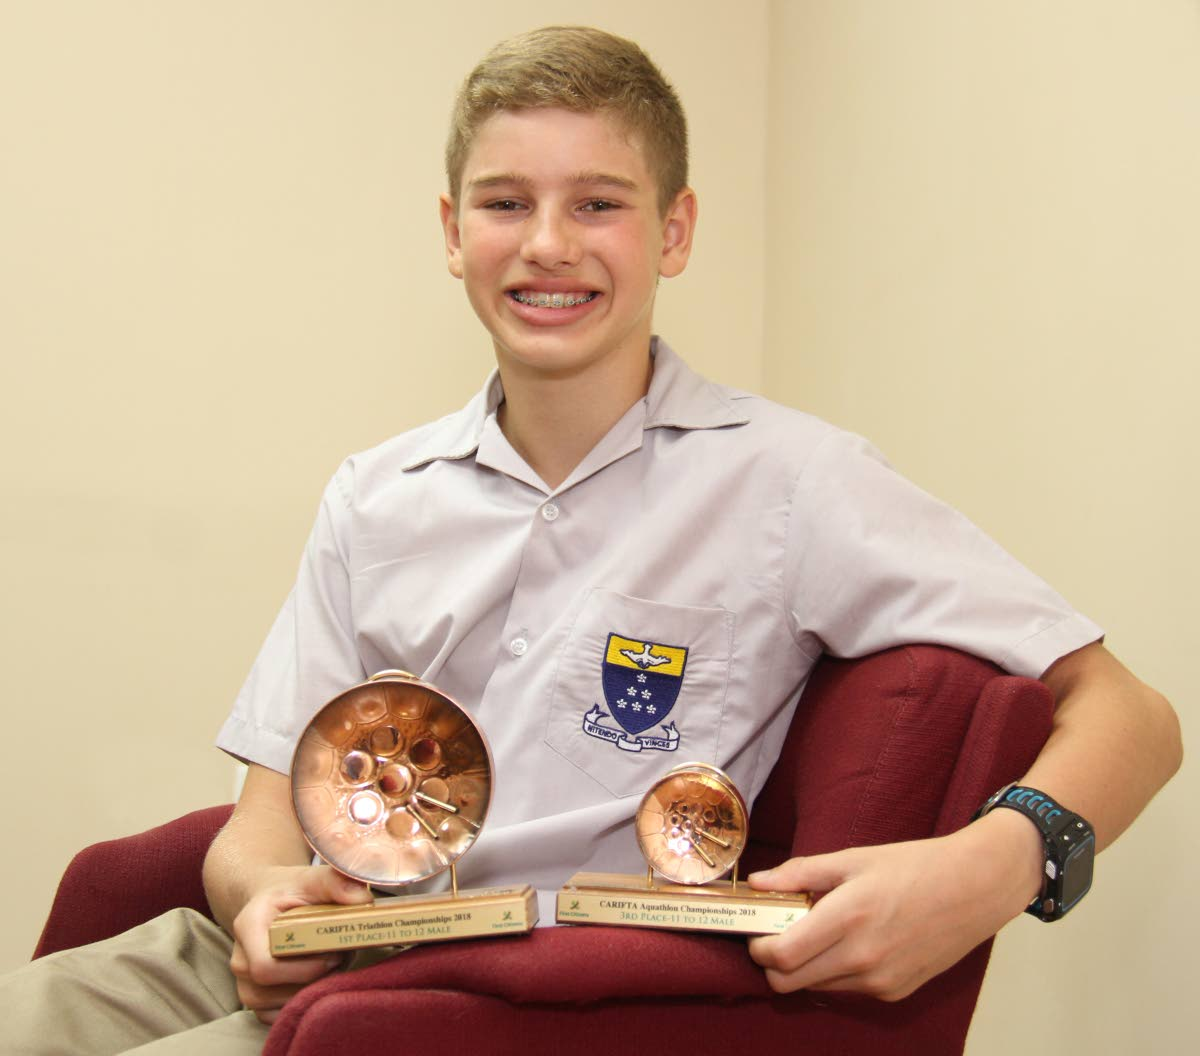 James Castagne-Hay with trophies won at the 2018 Carifta Triathlon and Aquathlon Championships. PHOTO BY ROGER JACOB